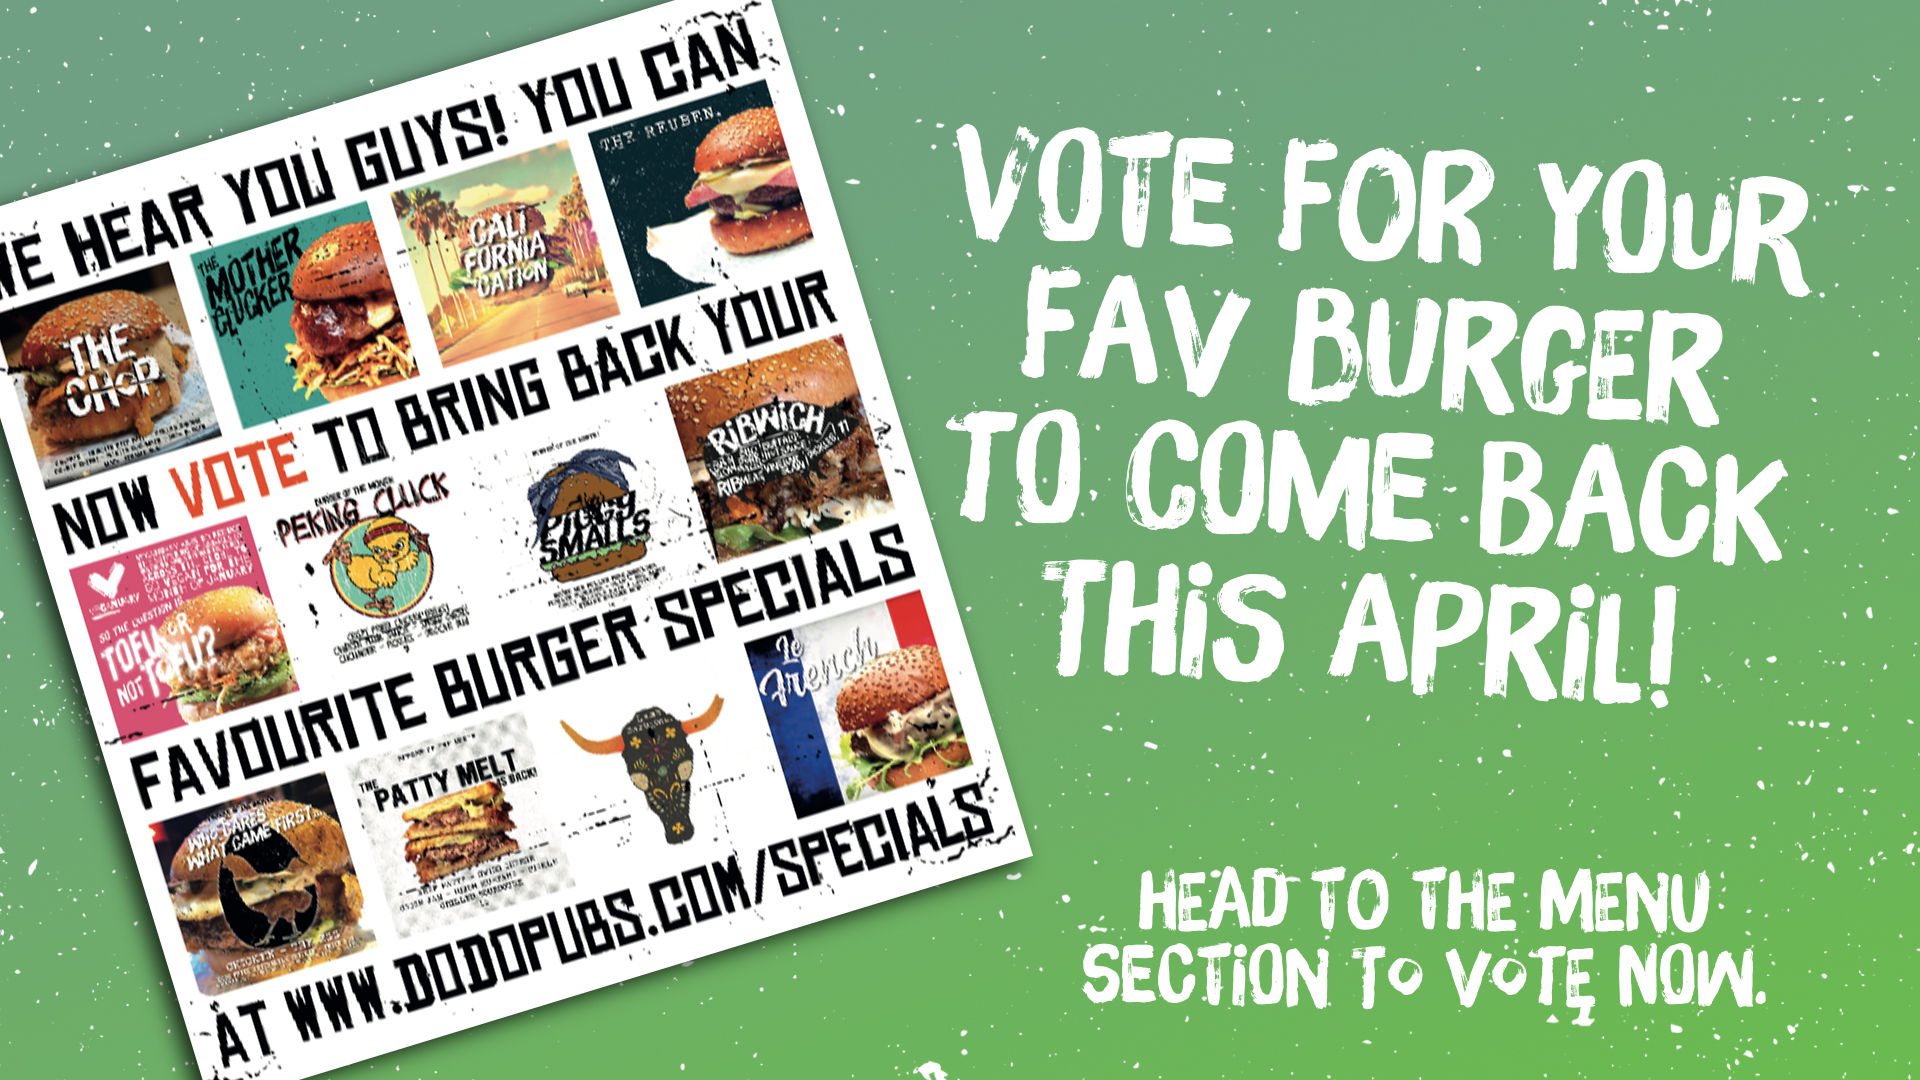 vote for ur fav burger banner 2